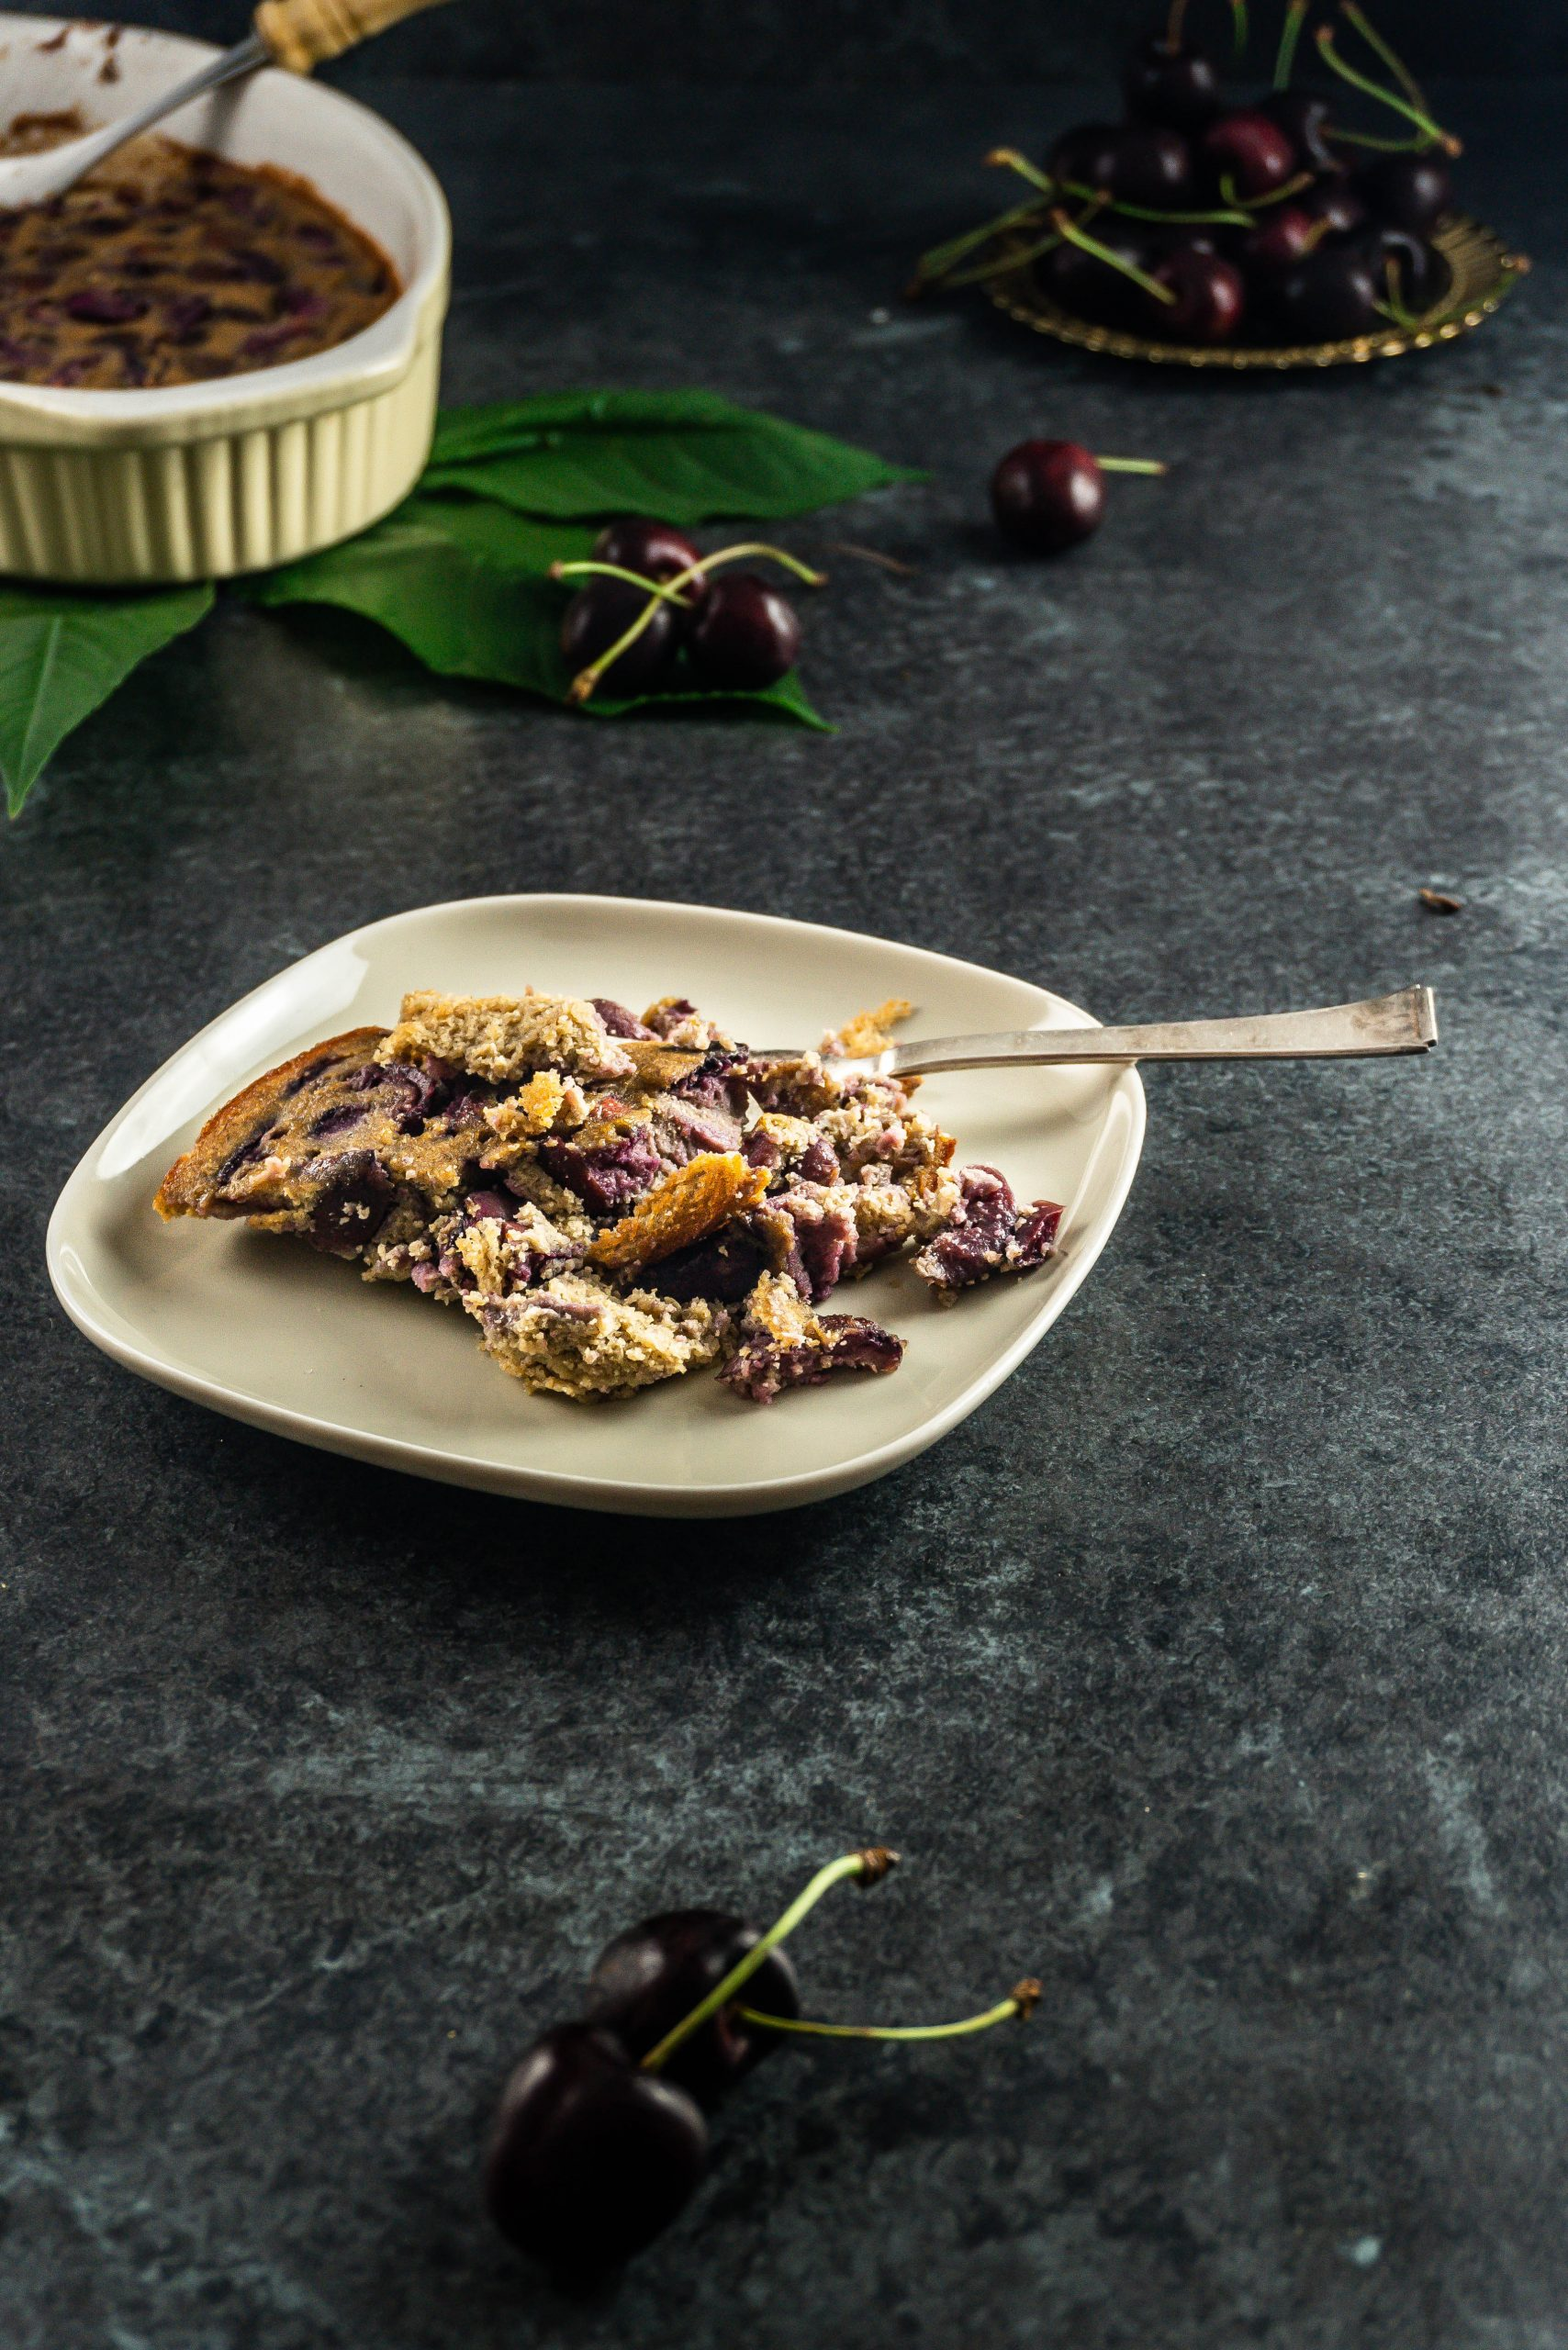 Cherry Clafoutis put on a plate with a fork tugged into with cherries lying around